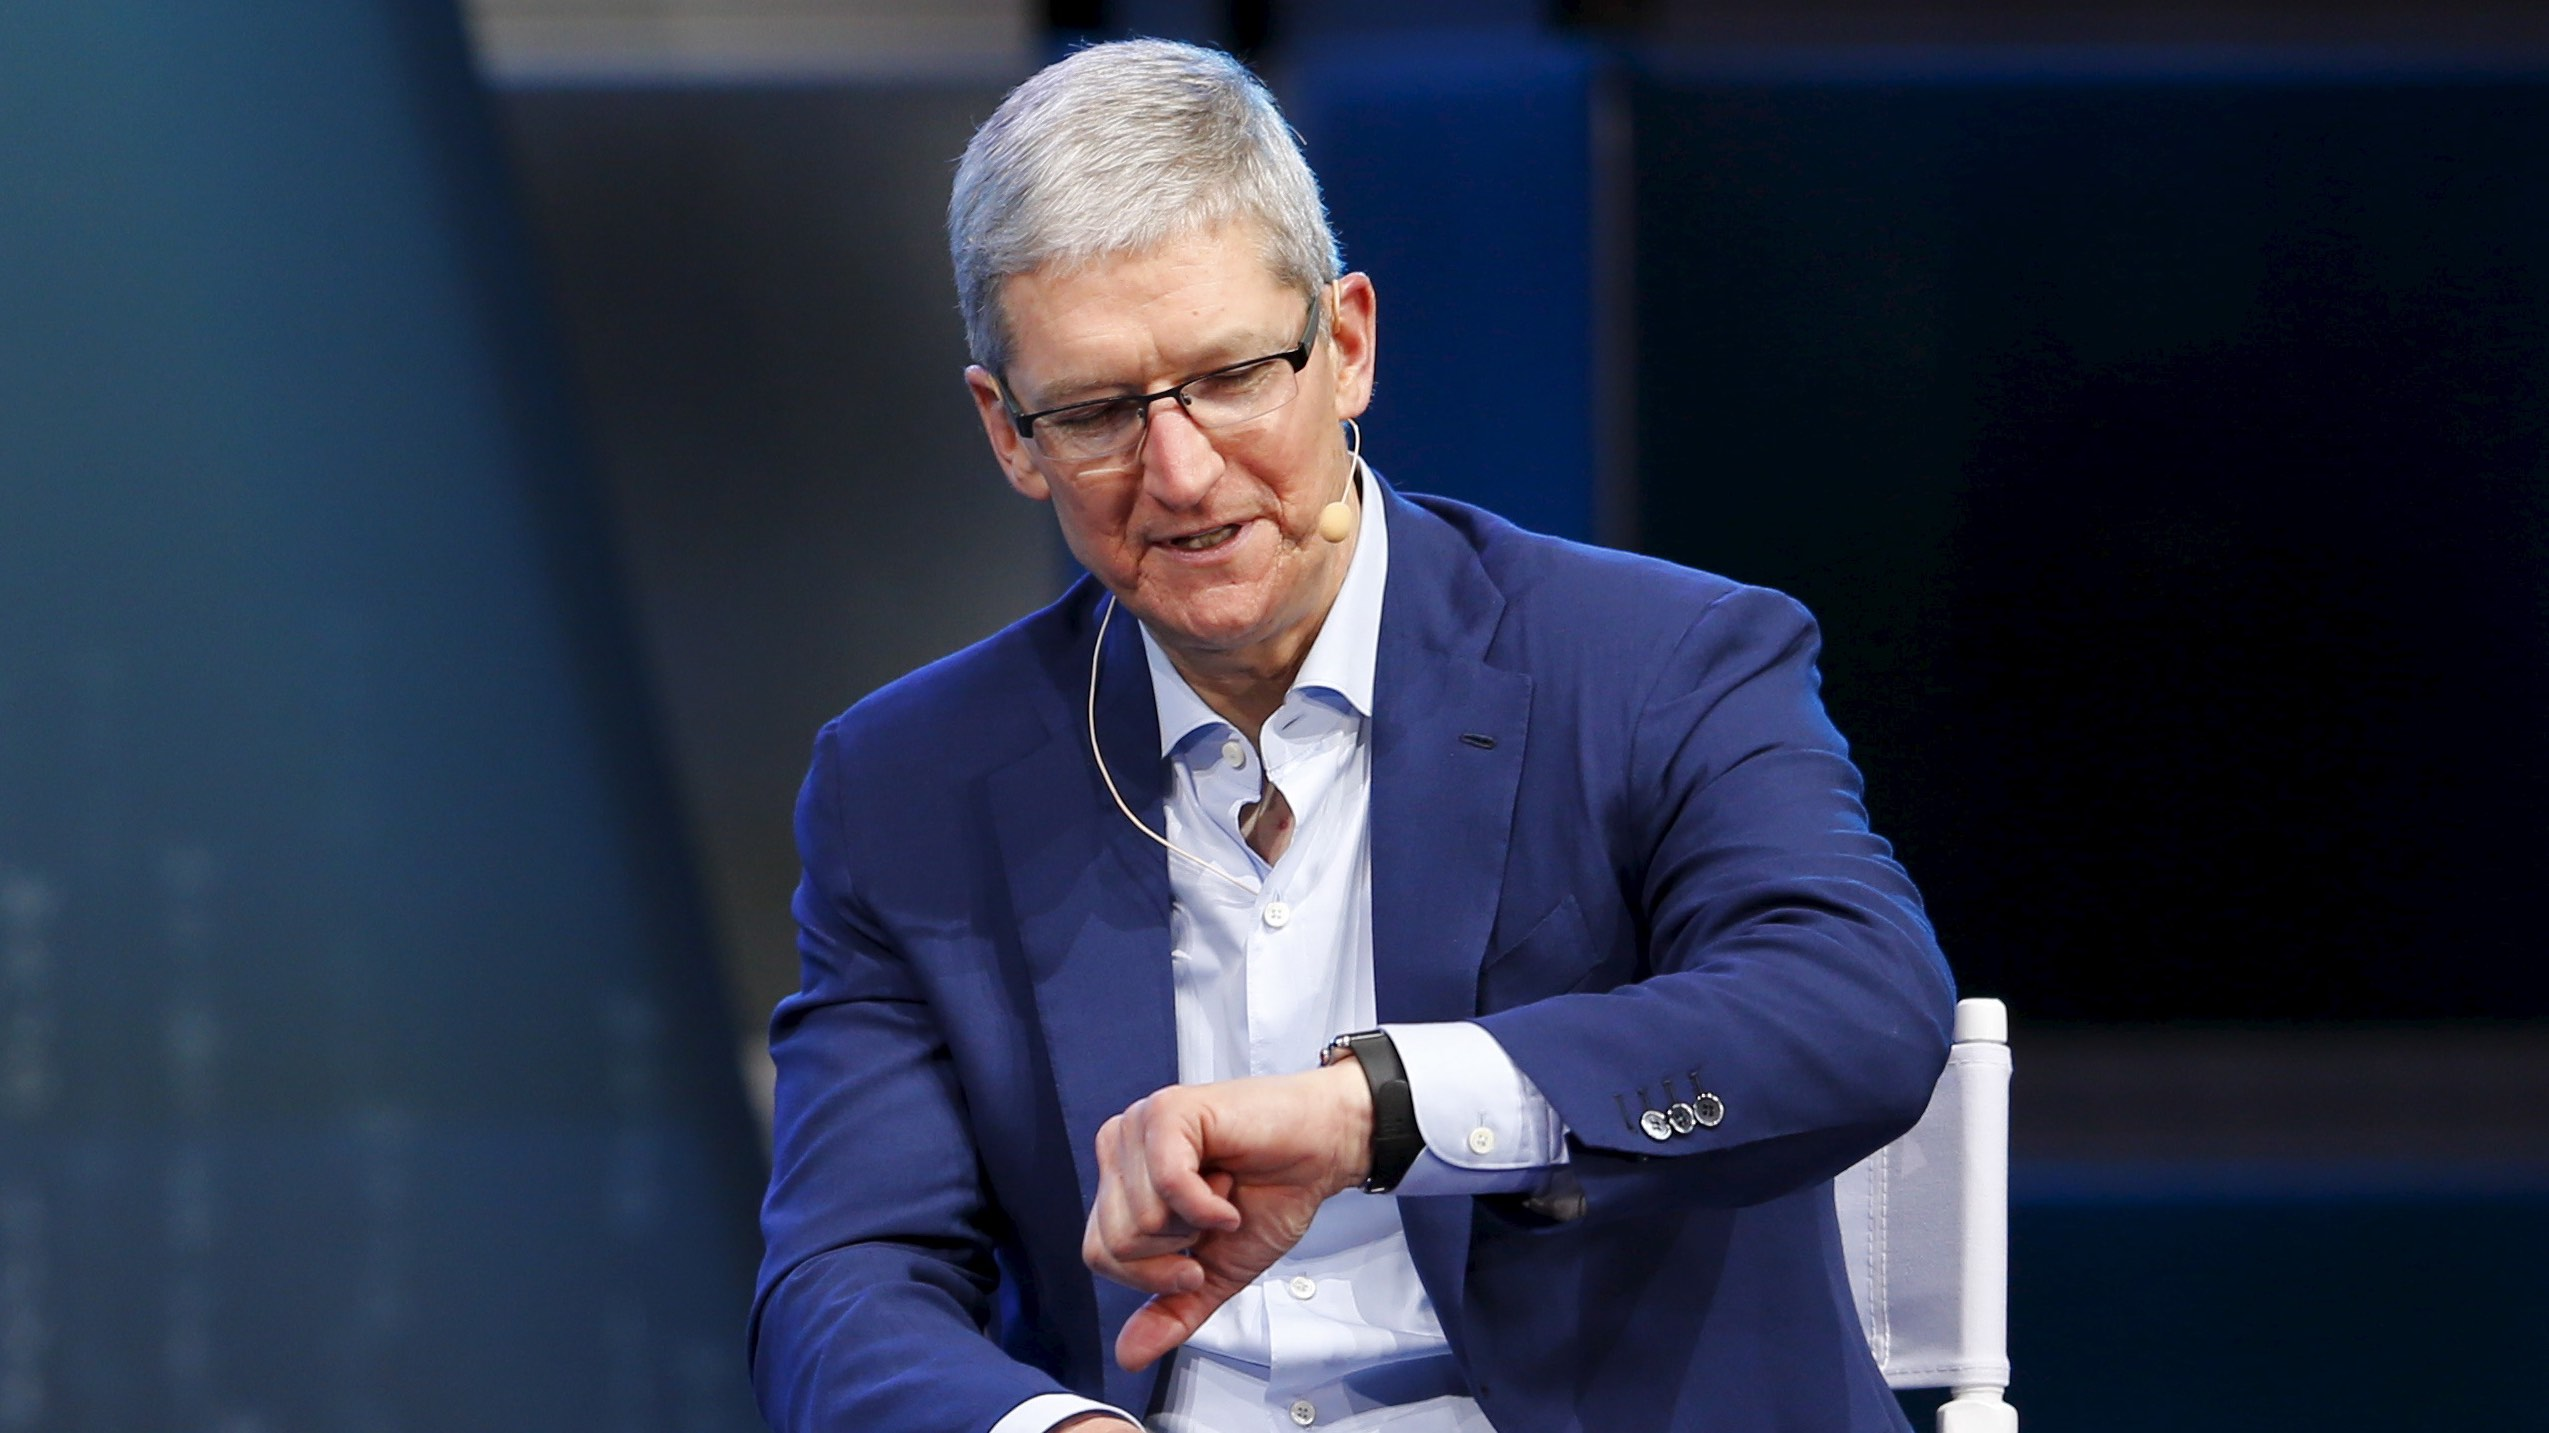 Apple CEO Tim Cook (R) talks about his apple watch as he speaks with Gerard Baker, Editor in Chief, The Wall Street Journal, during the Wall Street Journal Digital Live ( WSJDLive ) conference at the Montage hotline Laguna Beach, California October 19, 2015. REUTERS/Mike Blake